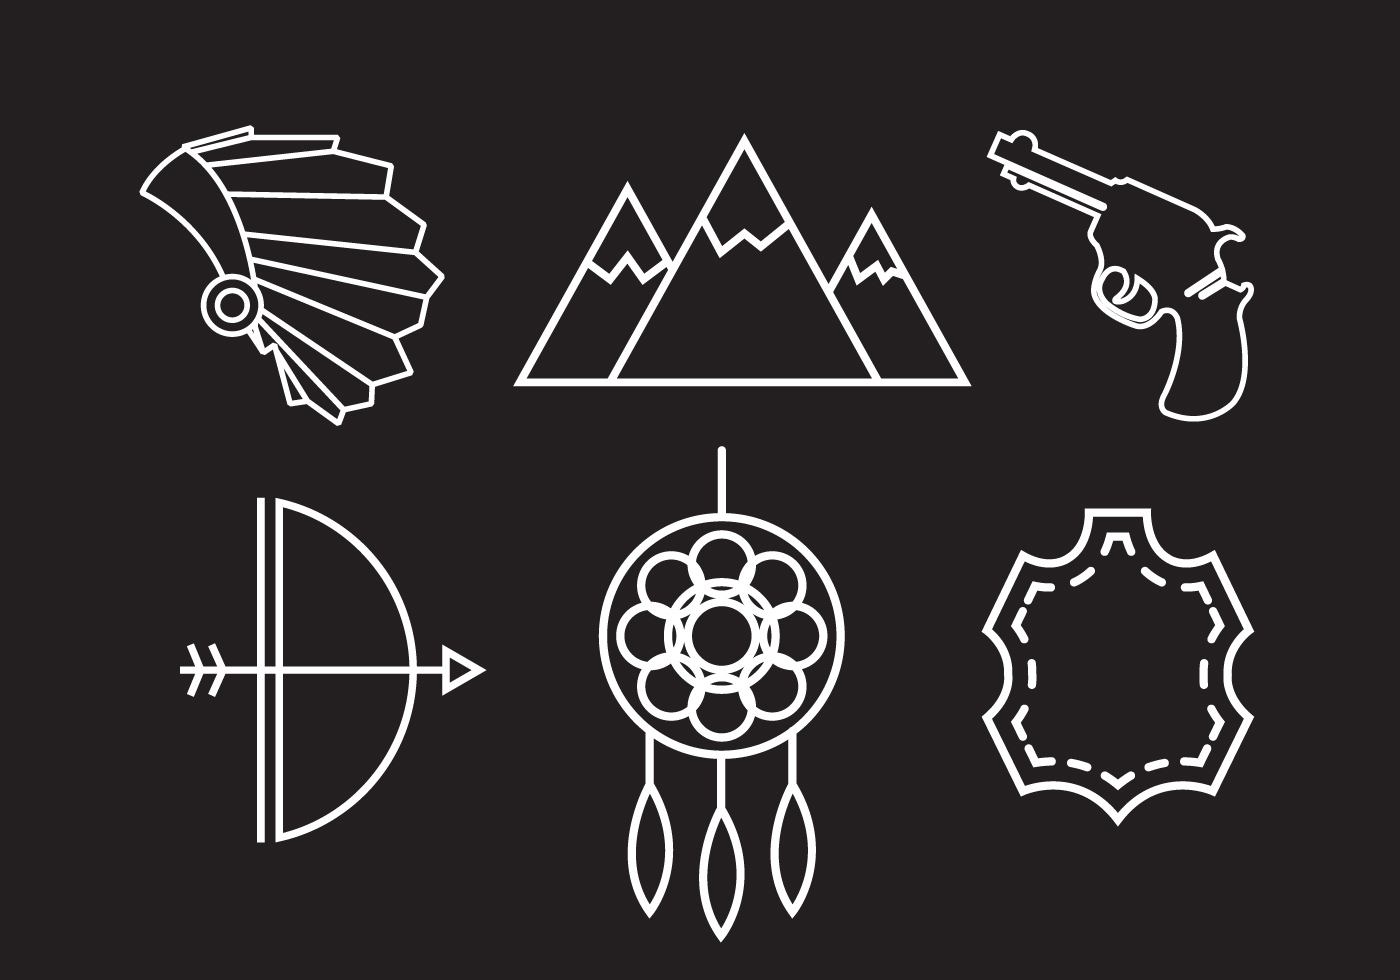 Tribal Cute Wallpaper Wild West Vector Icons Download Free Vector Art Stock